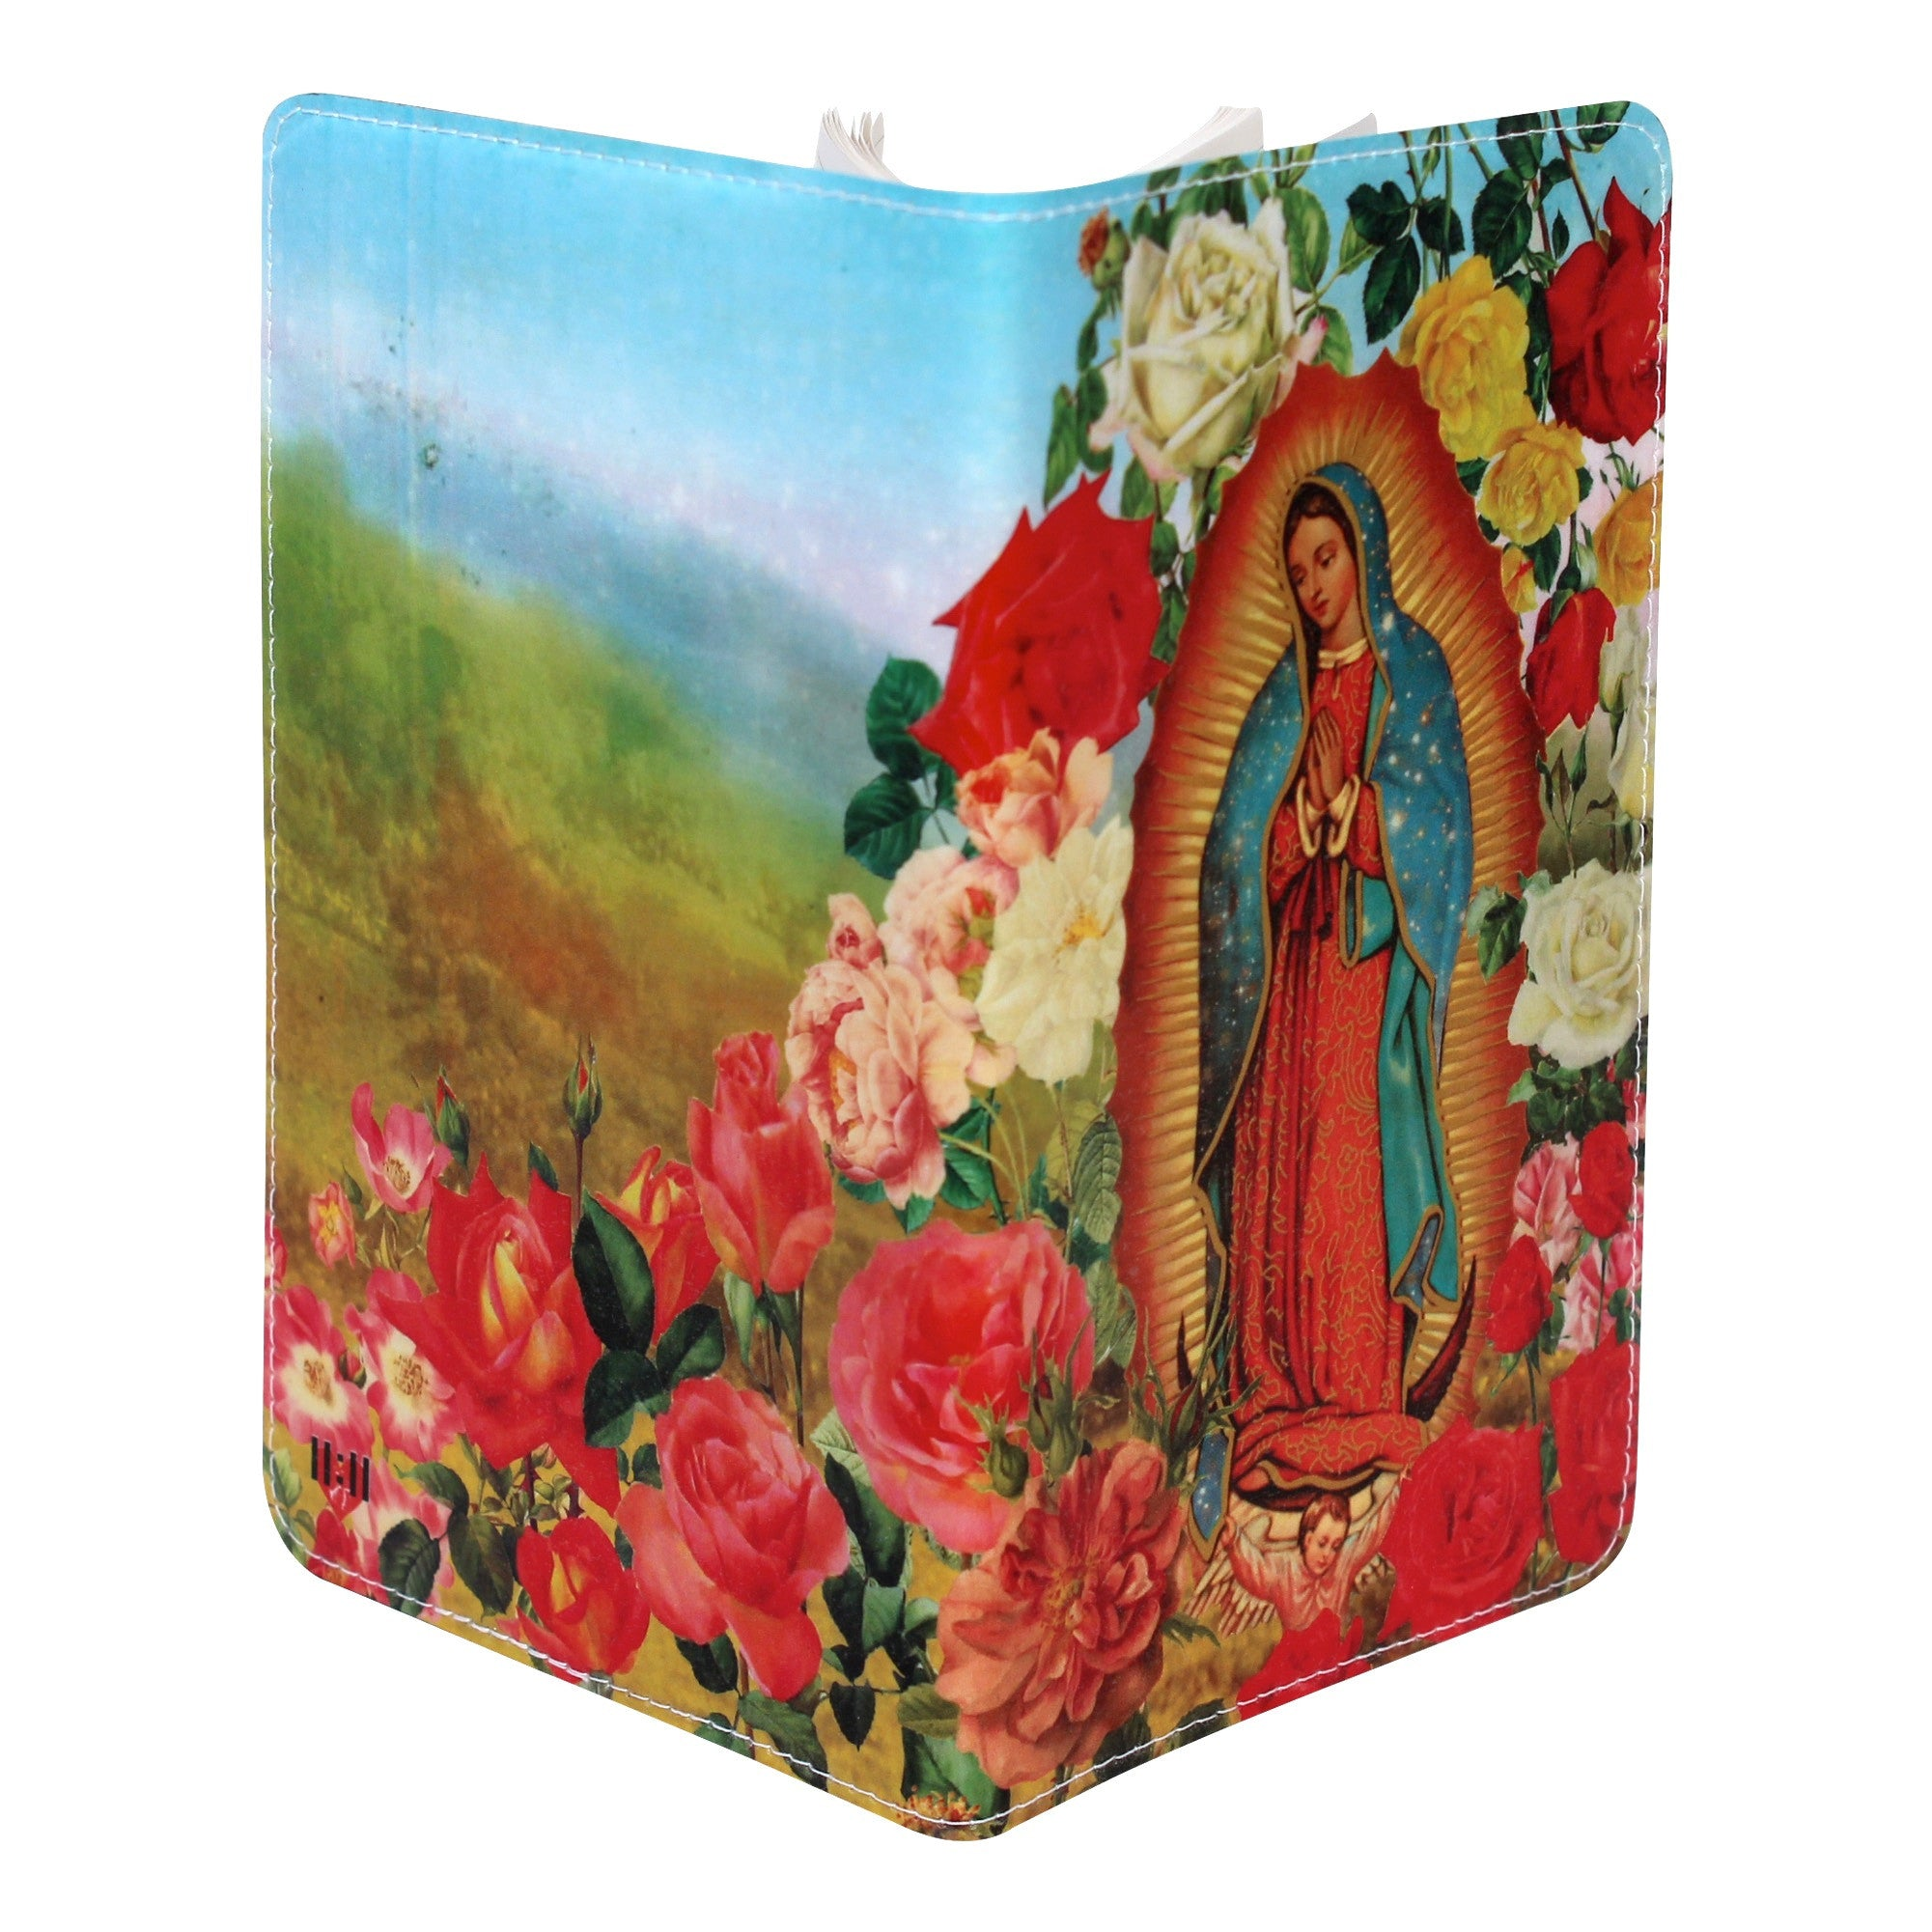 Virgin Mary Moleskine Cahier, Pocket Notebook Cover